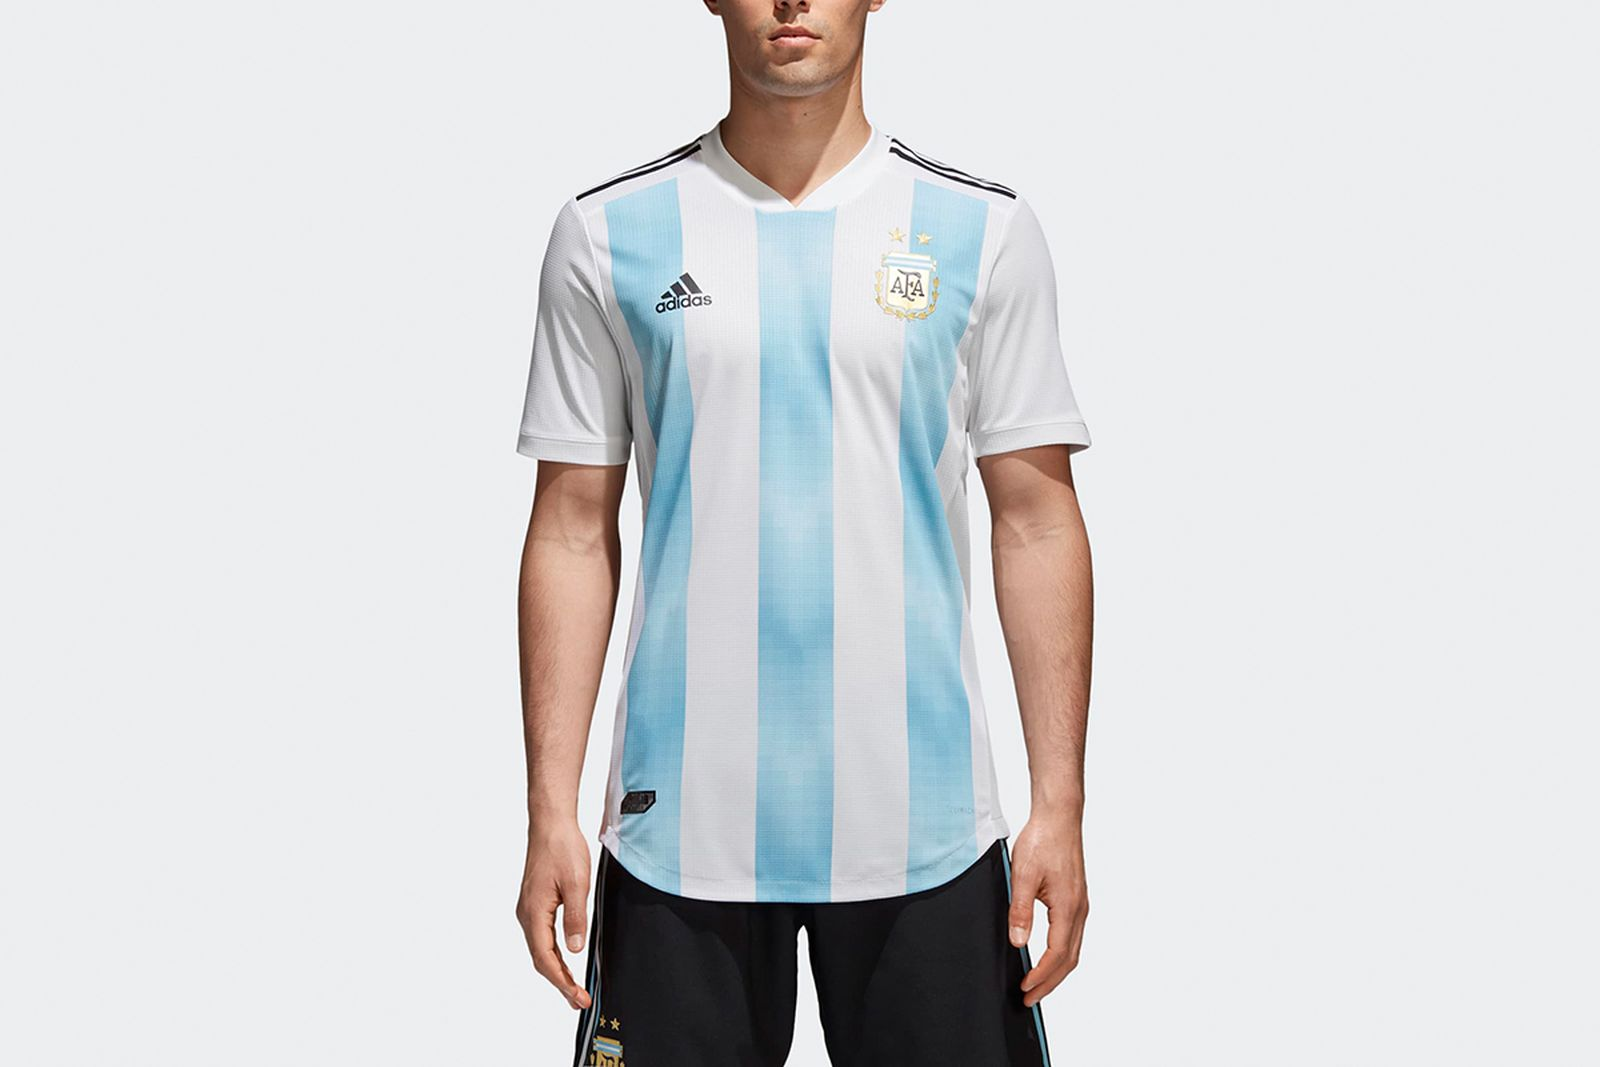 Argentina Home Authentic Jersey White BQ9329 21 model 2018 FIFA World Cup Adidas